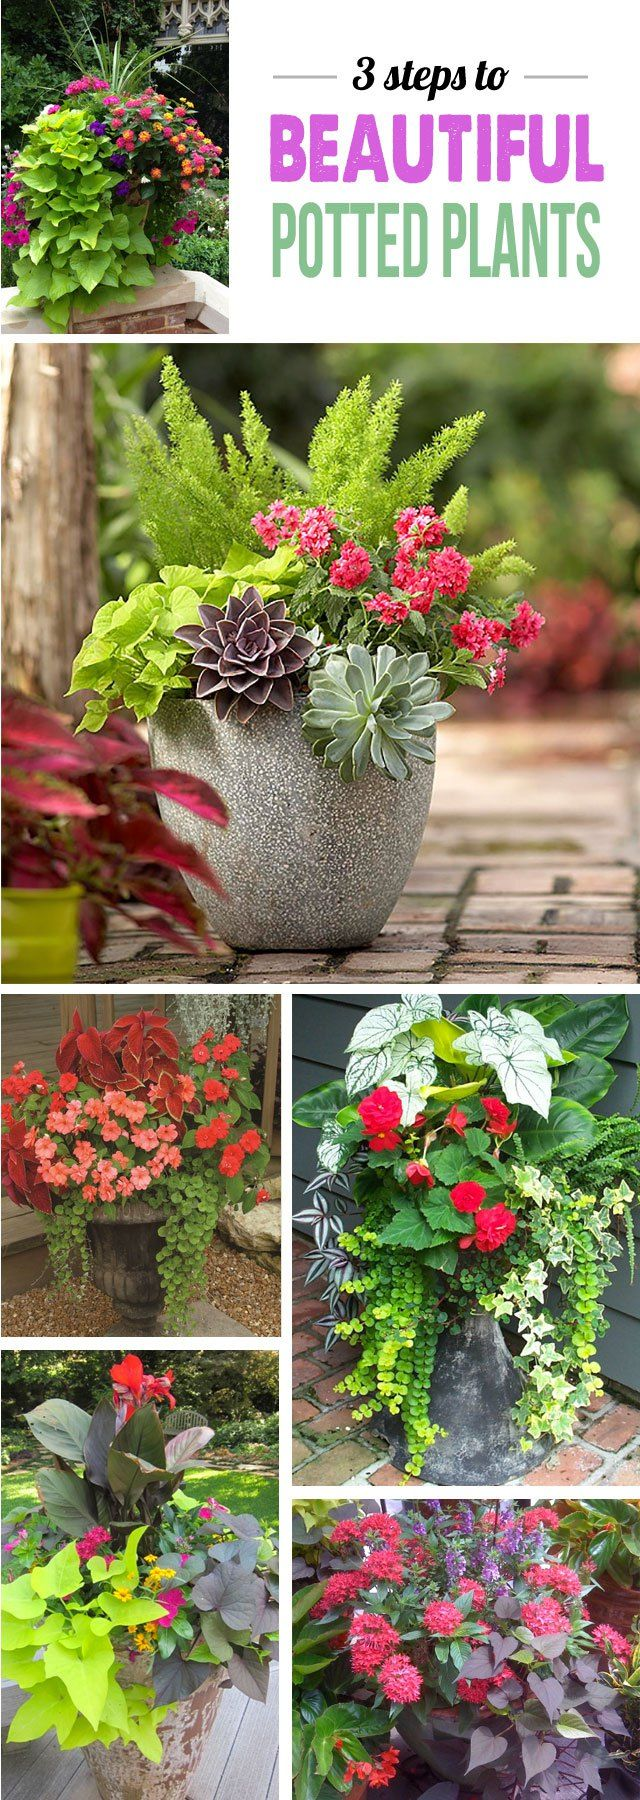 3 Steps To Beautiful Potted Plants